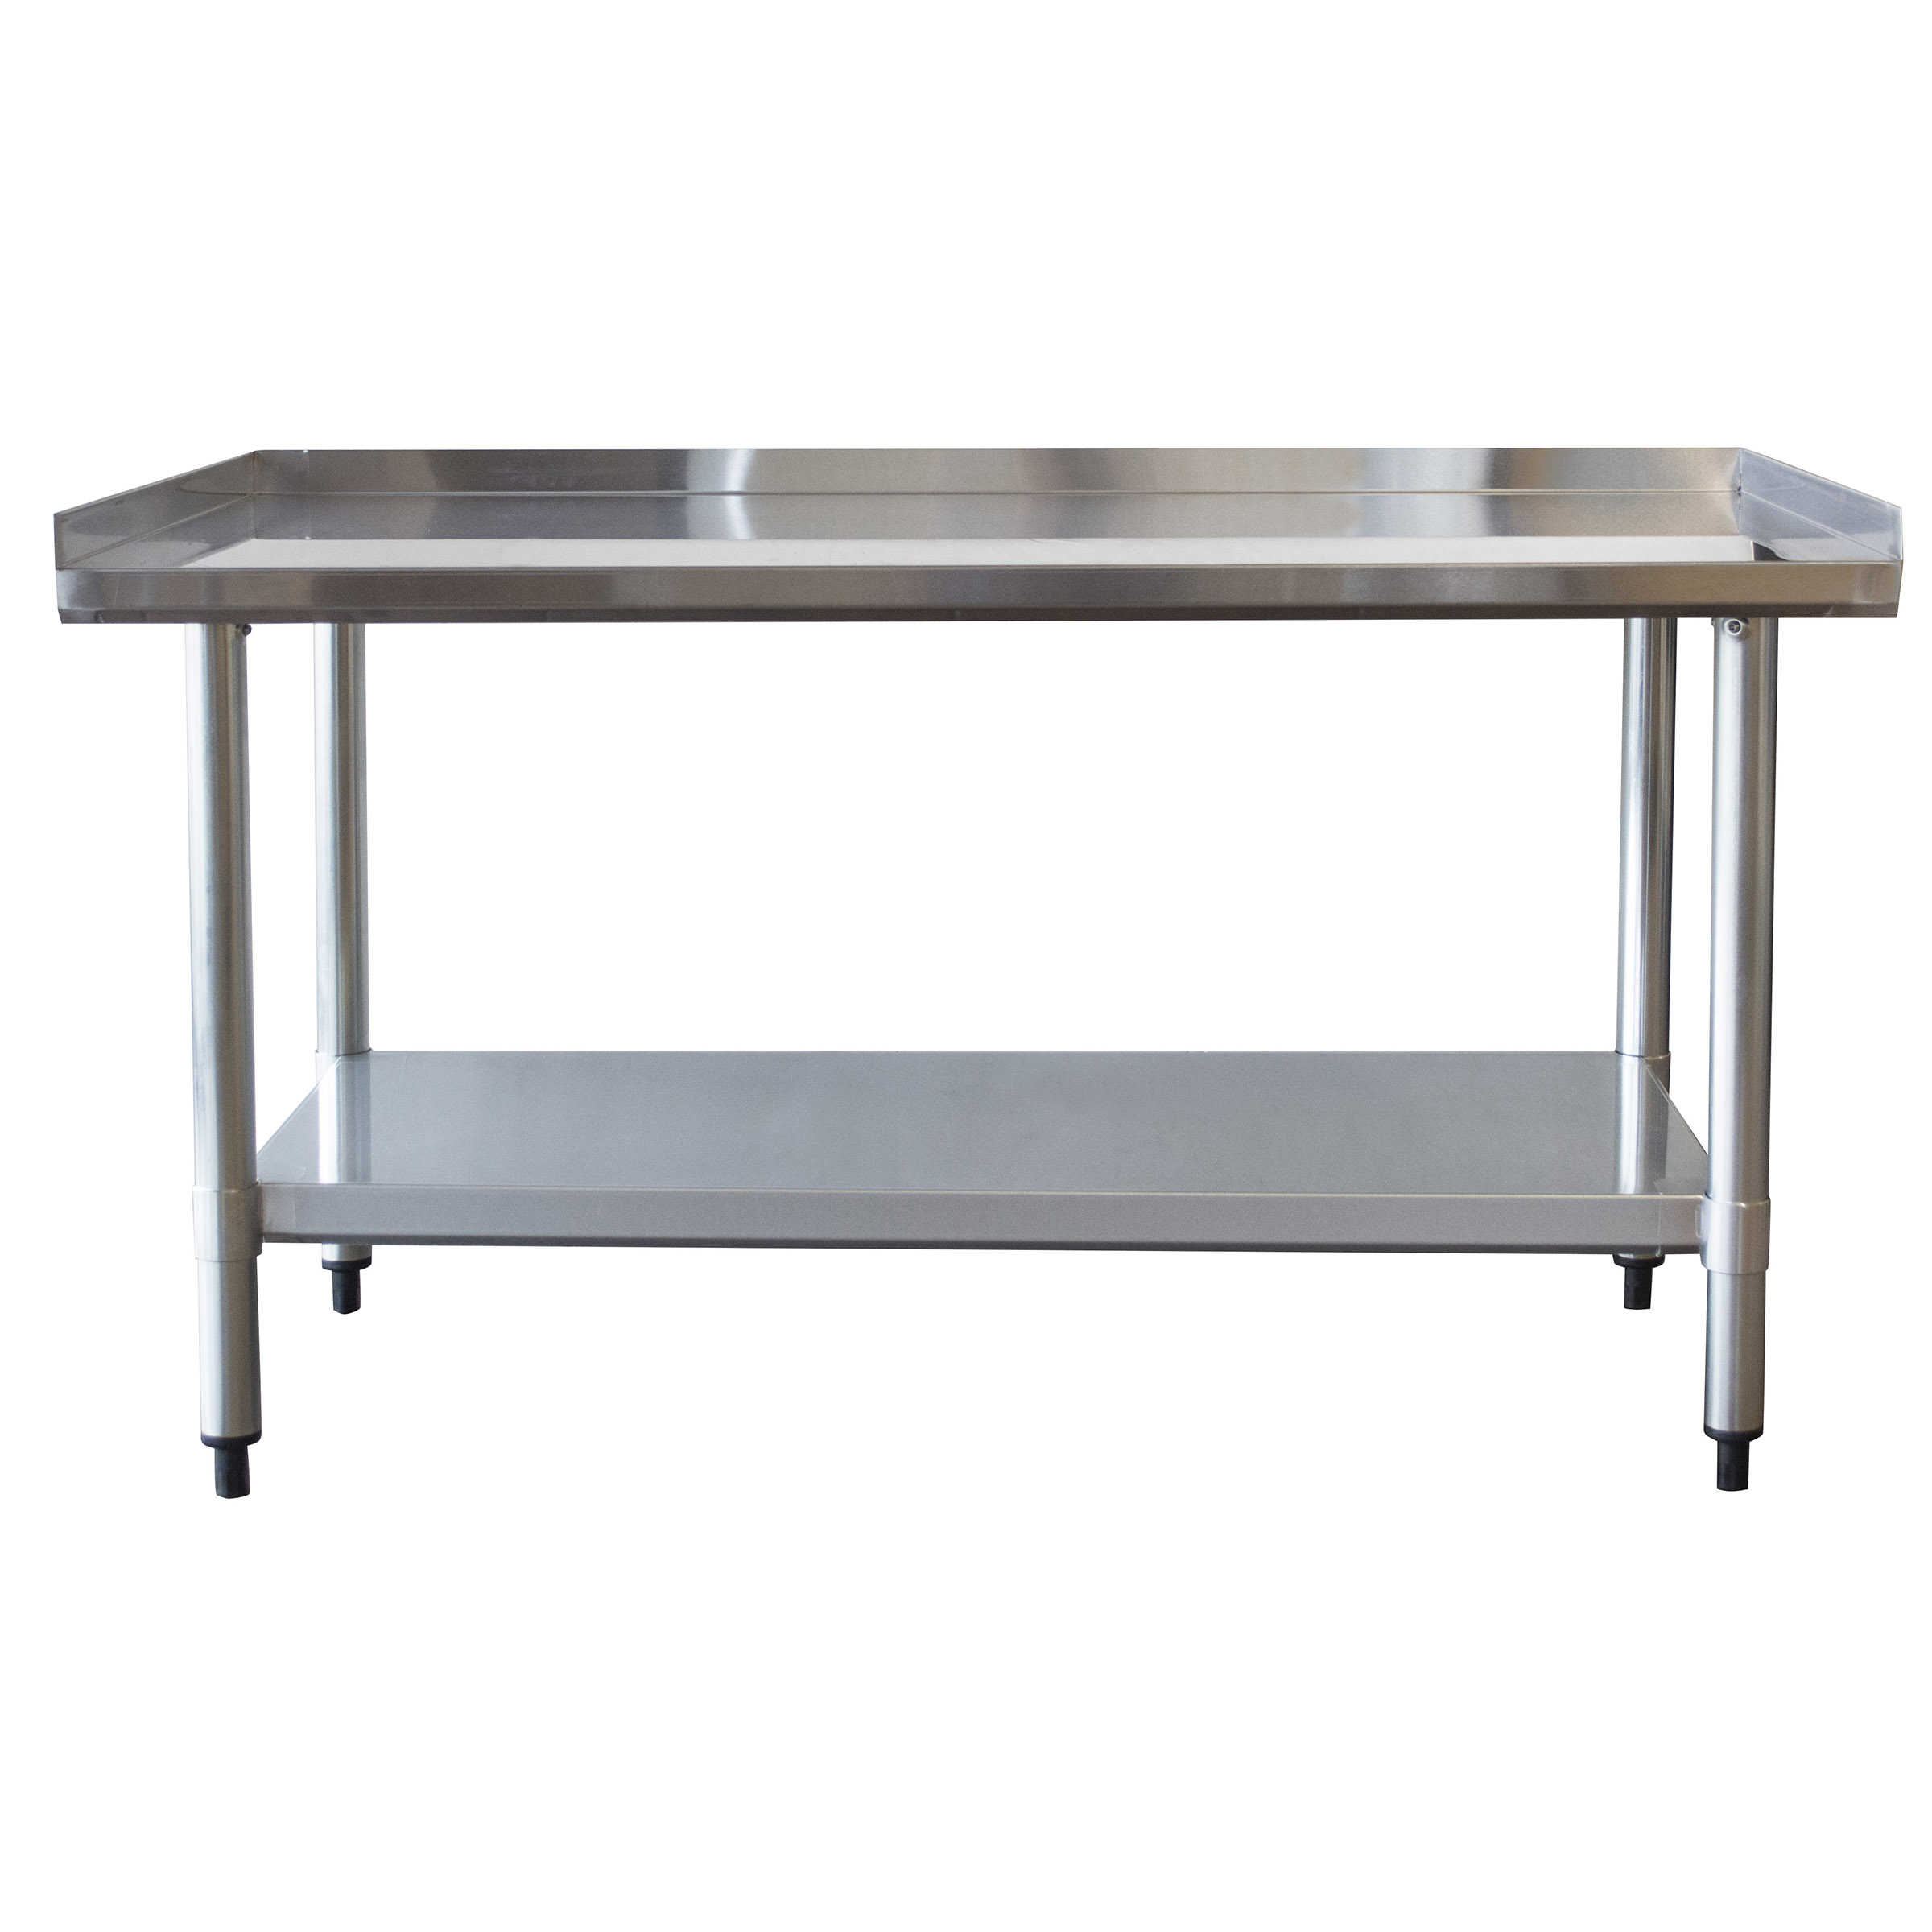 Sportsman Series Upturned Edge Stainless Steel Work Table 24 x 48 Inches